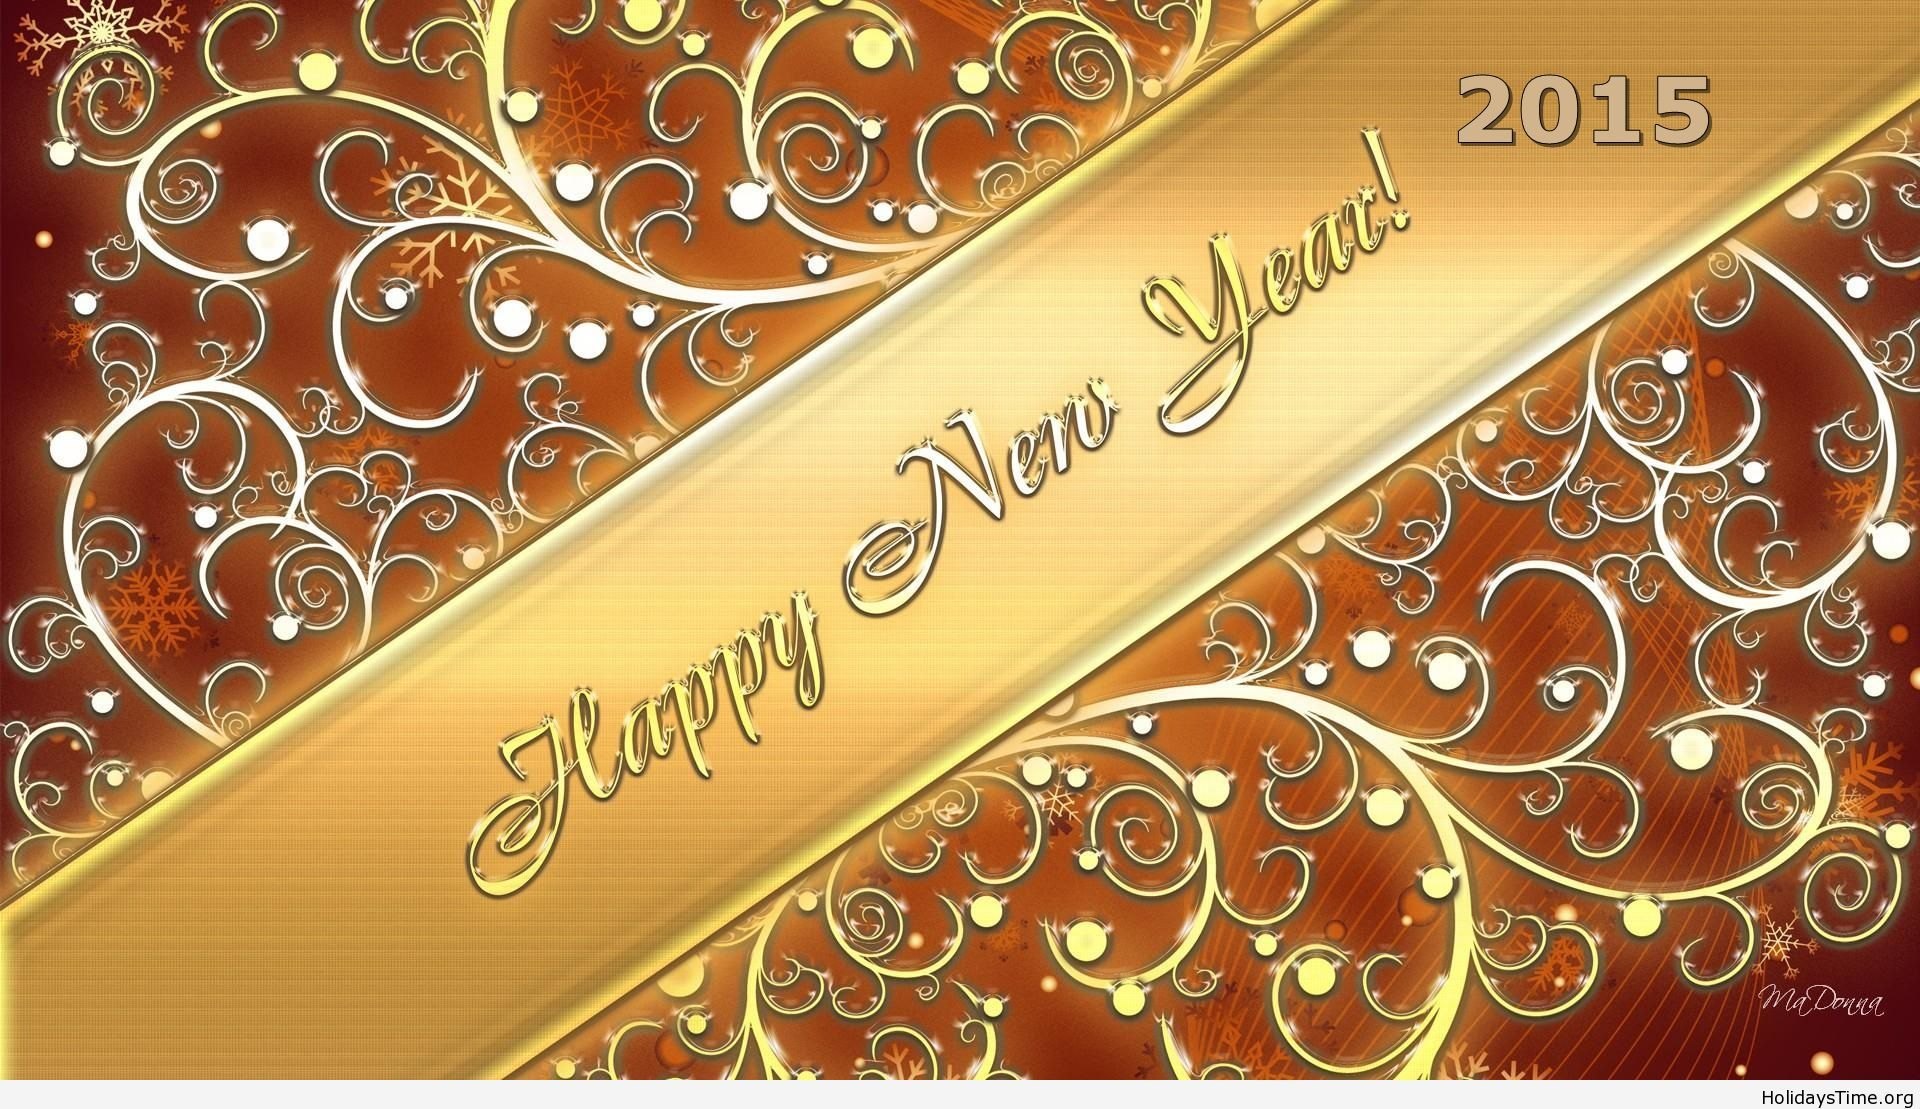 Happy new year 2015 background hd christmas pinterest explore happy new year cards and more happy new year 2015 background hd kristyandbryce Choice Image